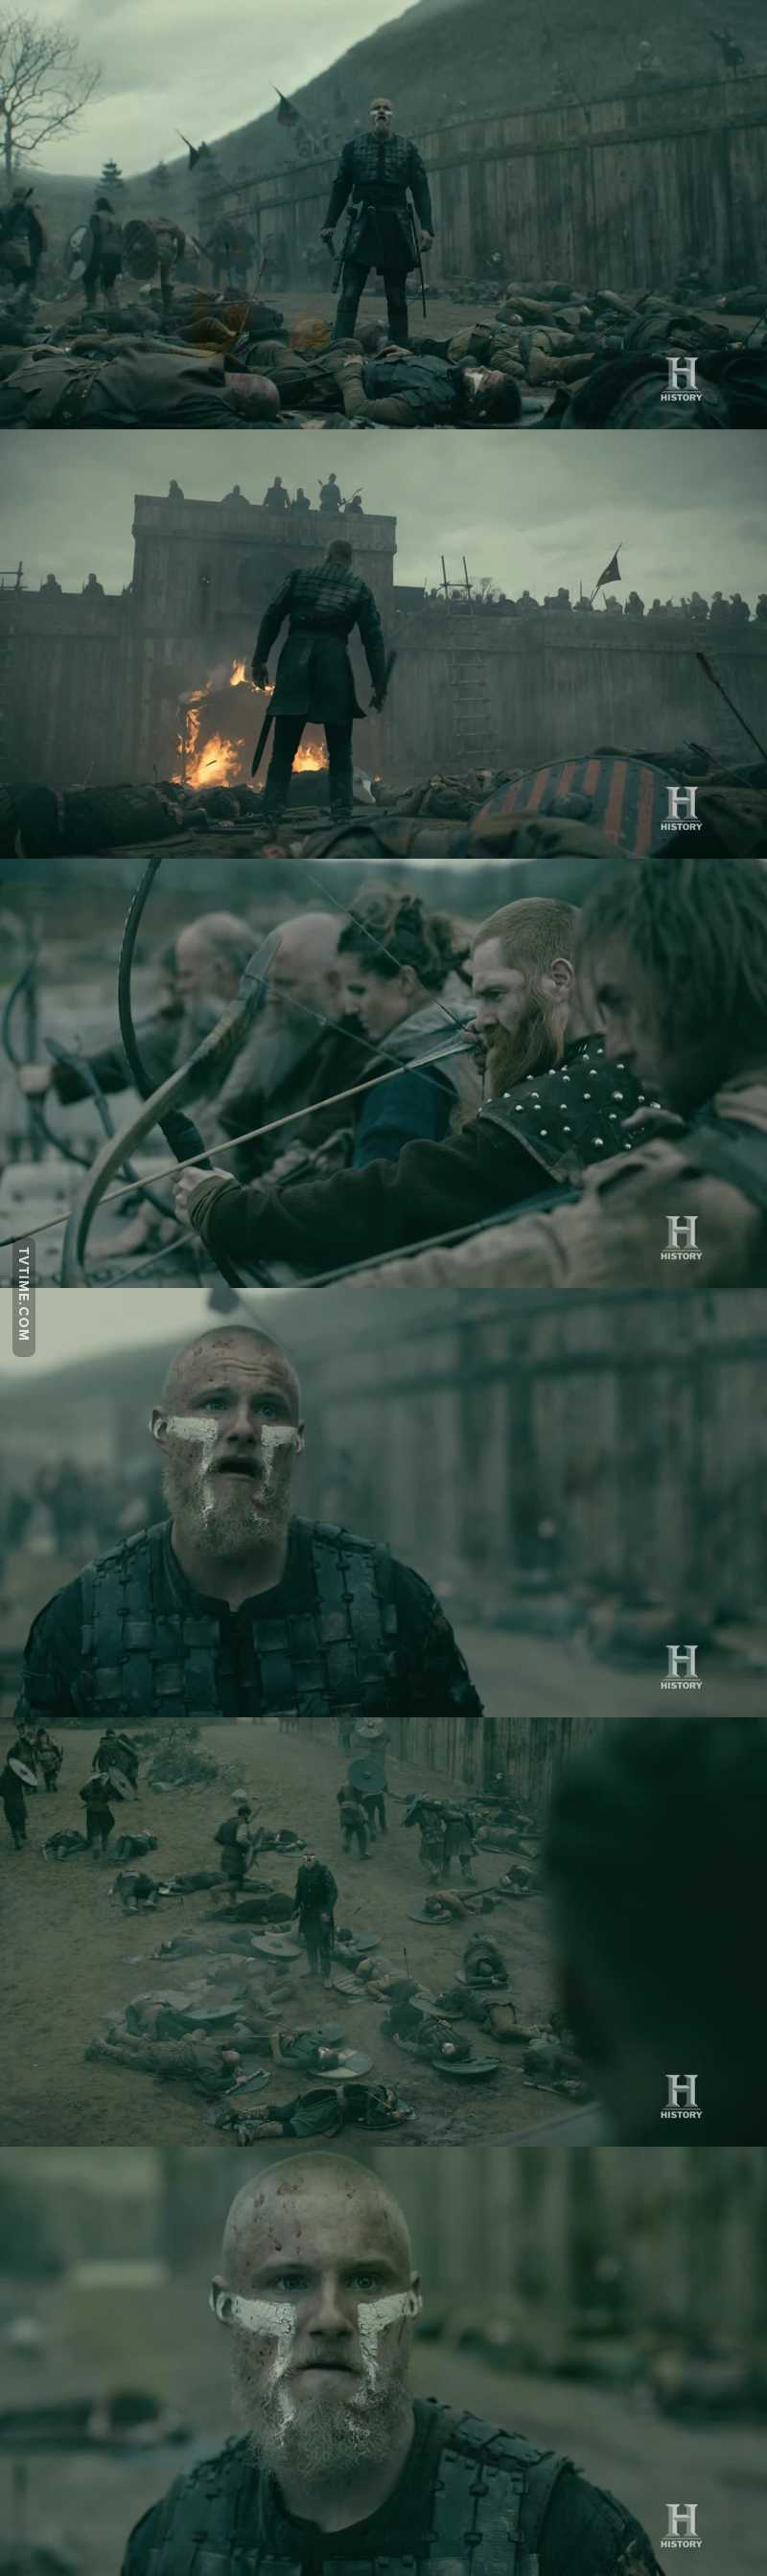 """""""You all know, i'am bjorn ironside, son of ragnar  Am not your enemy, you are my neighbors and my friends""""   Great scene 😢💔"""